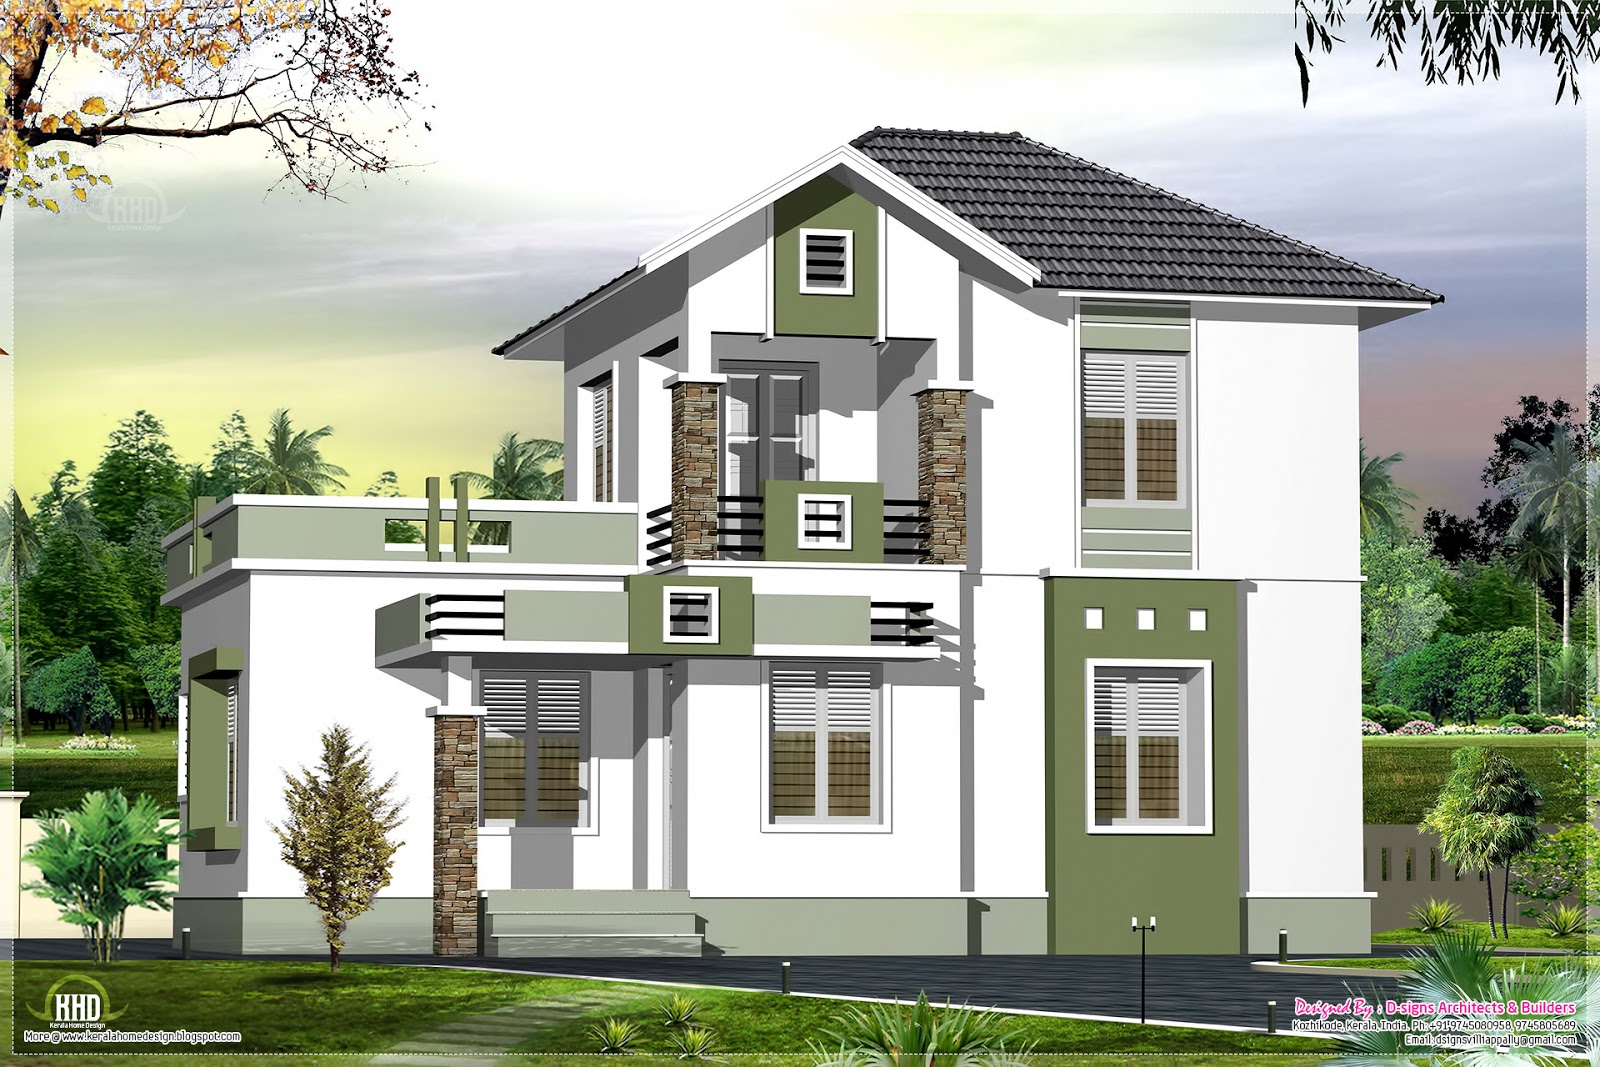 Low budget two storey house plans the cost of building a house in southern ontario rijus